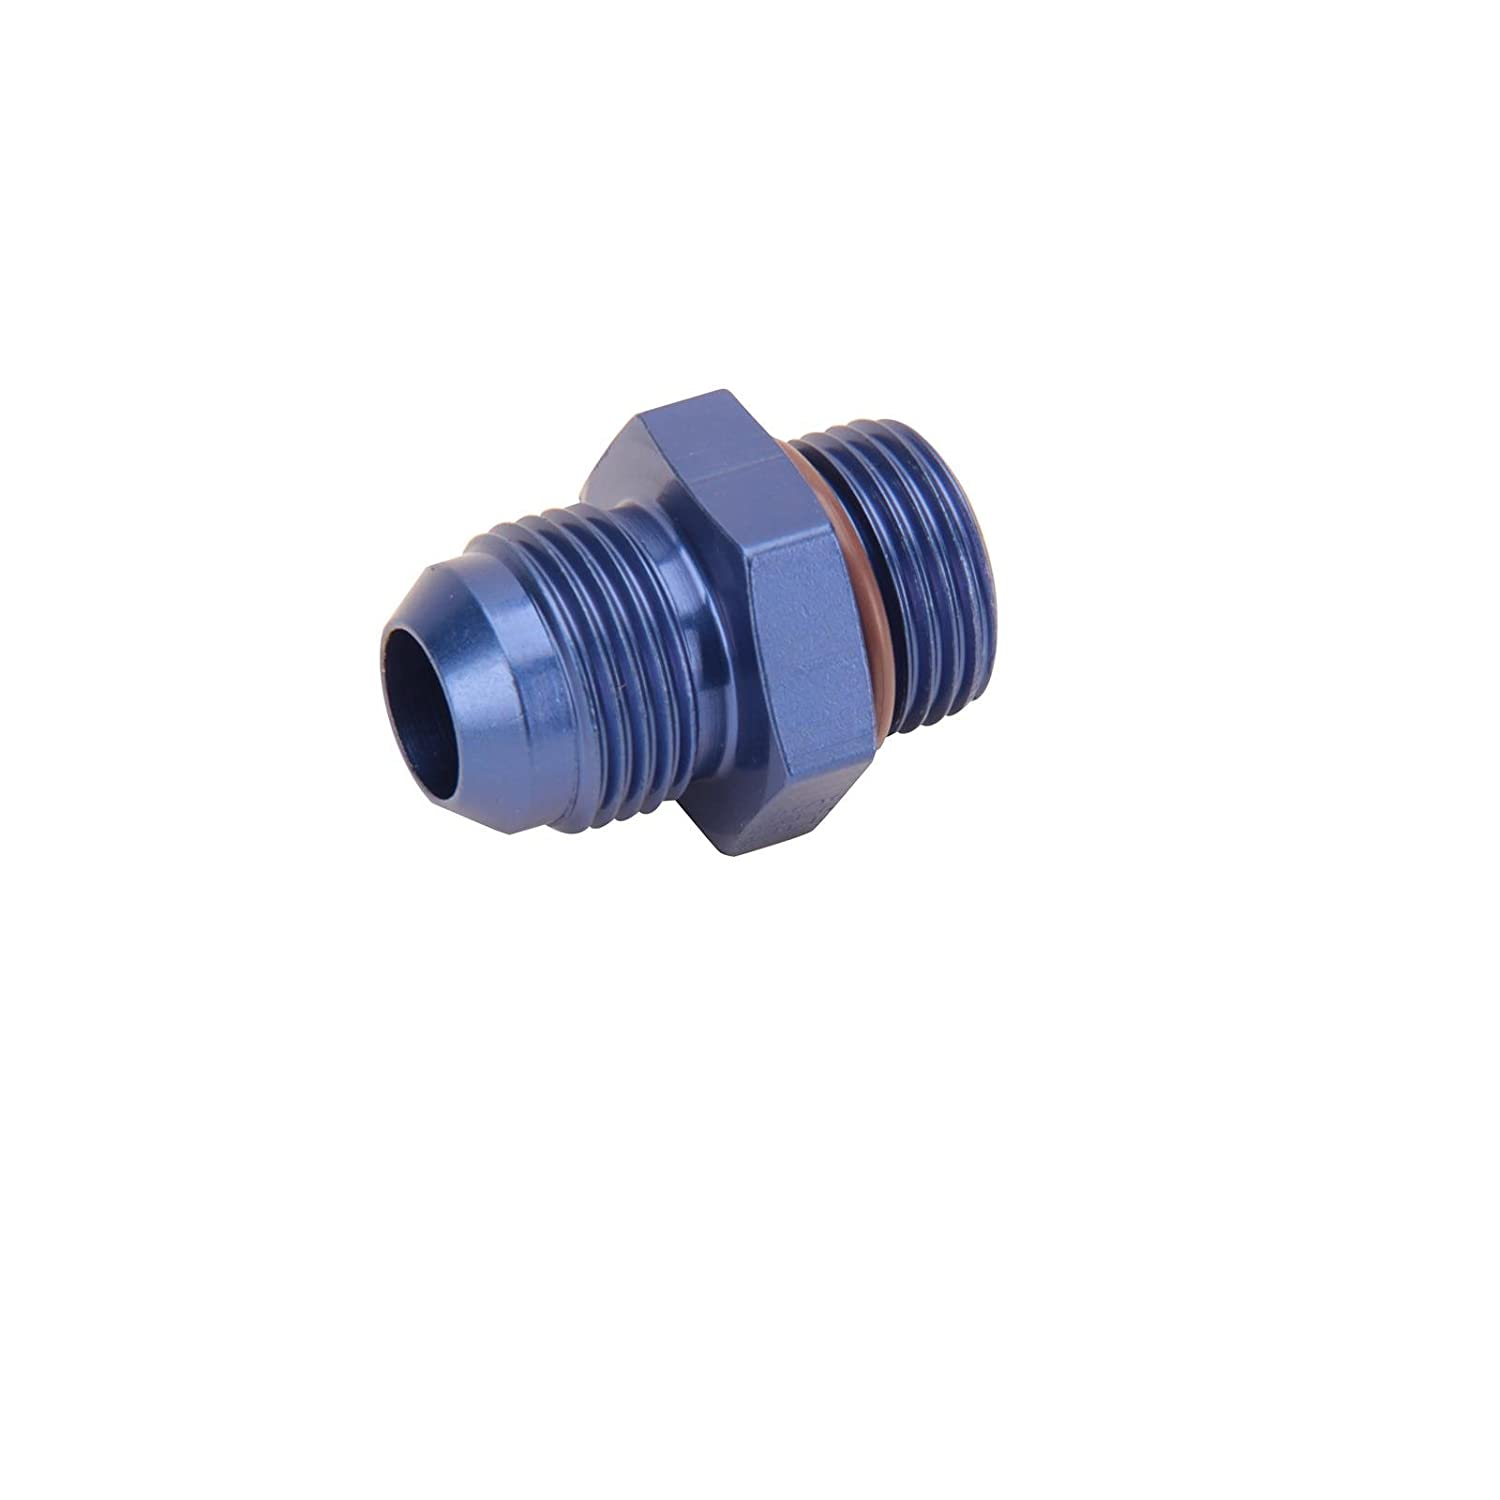 Straight High-Flow O-Ring 8 AN Port Fitting 8 AN Hose to